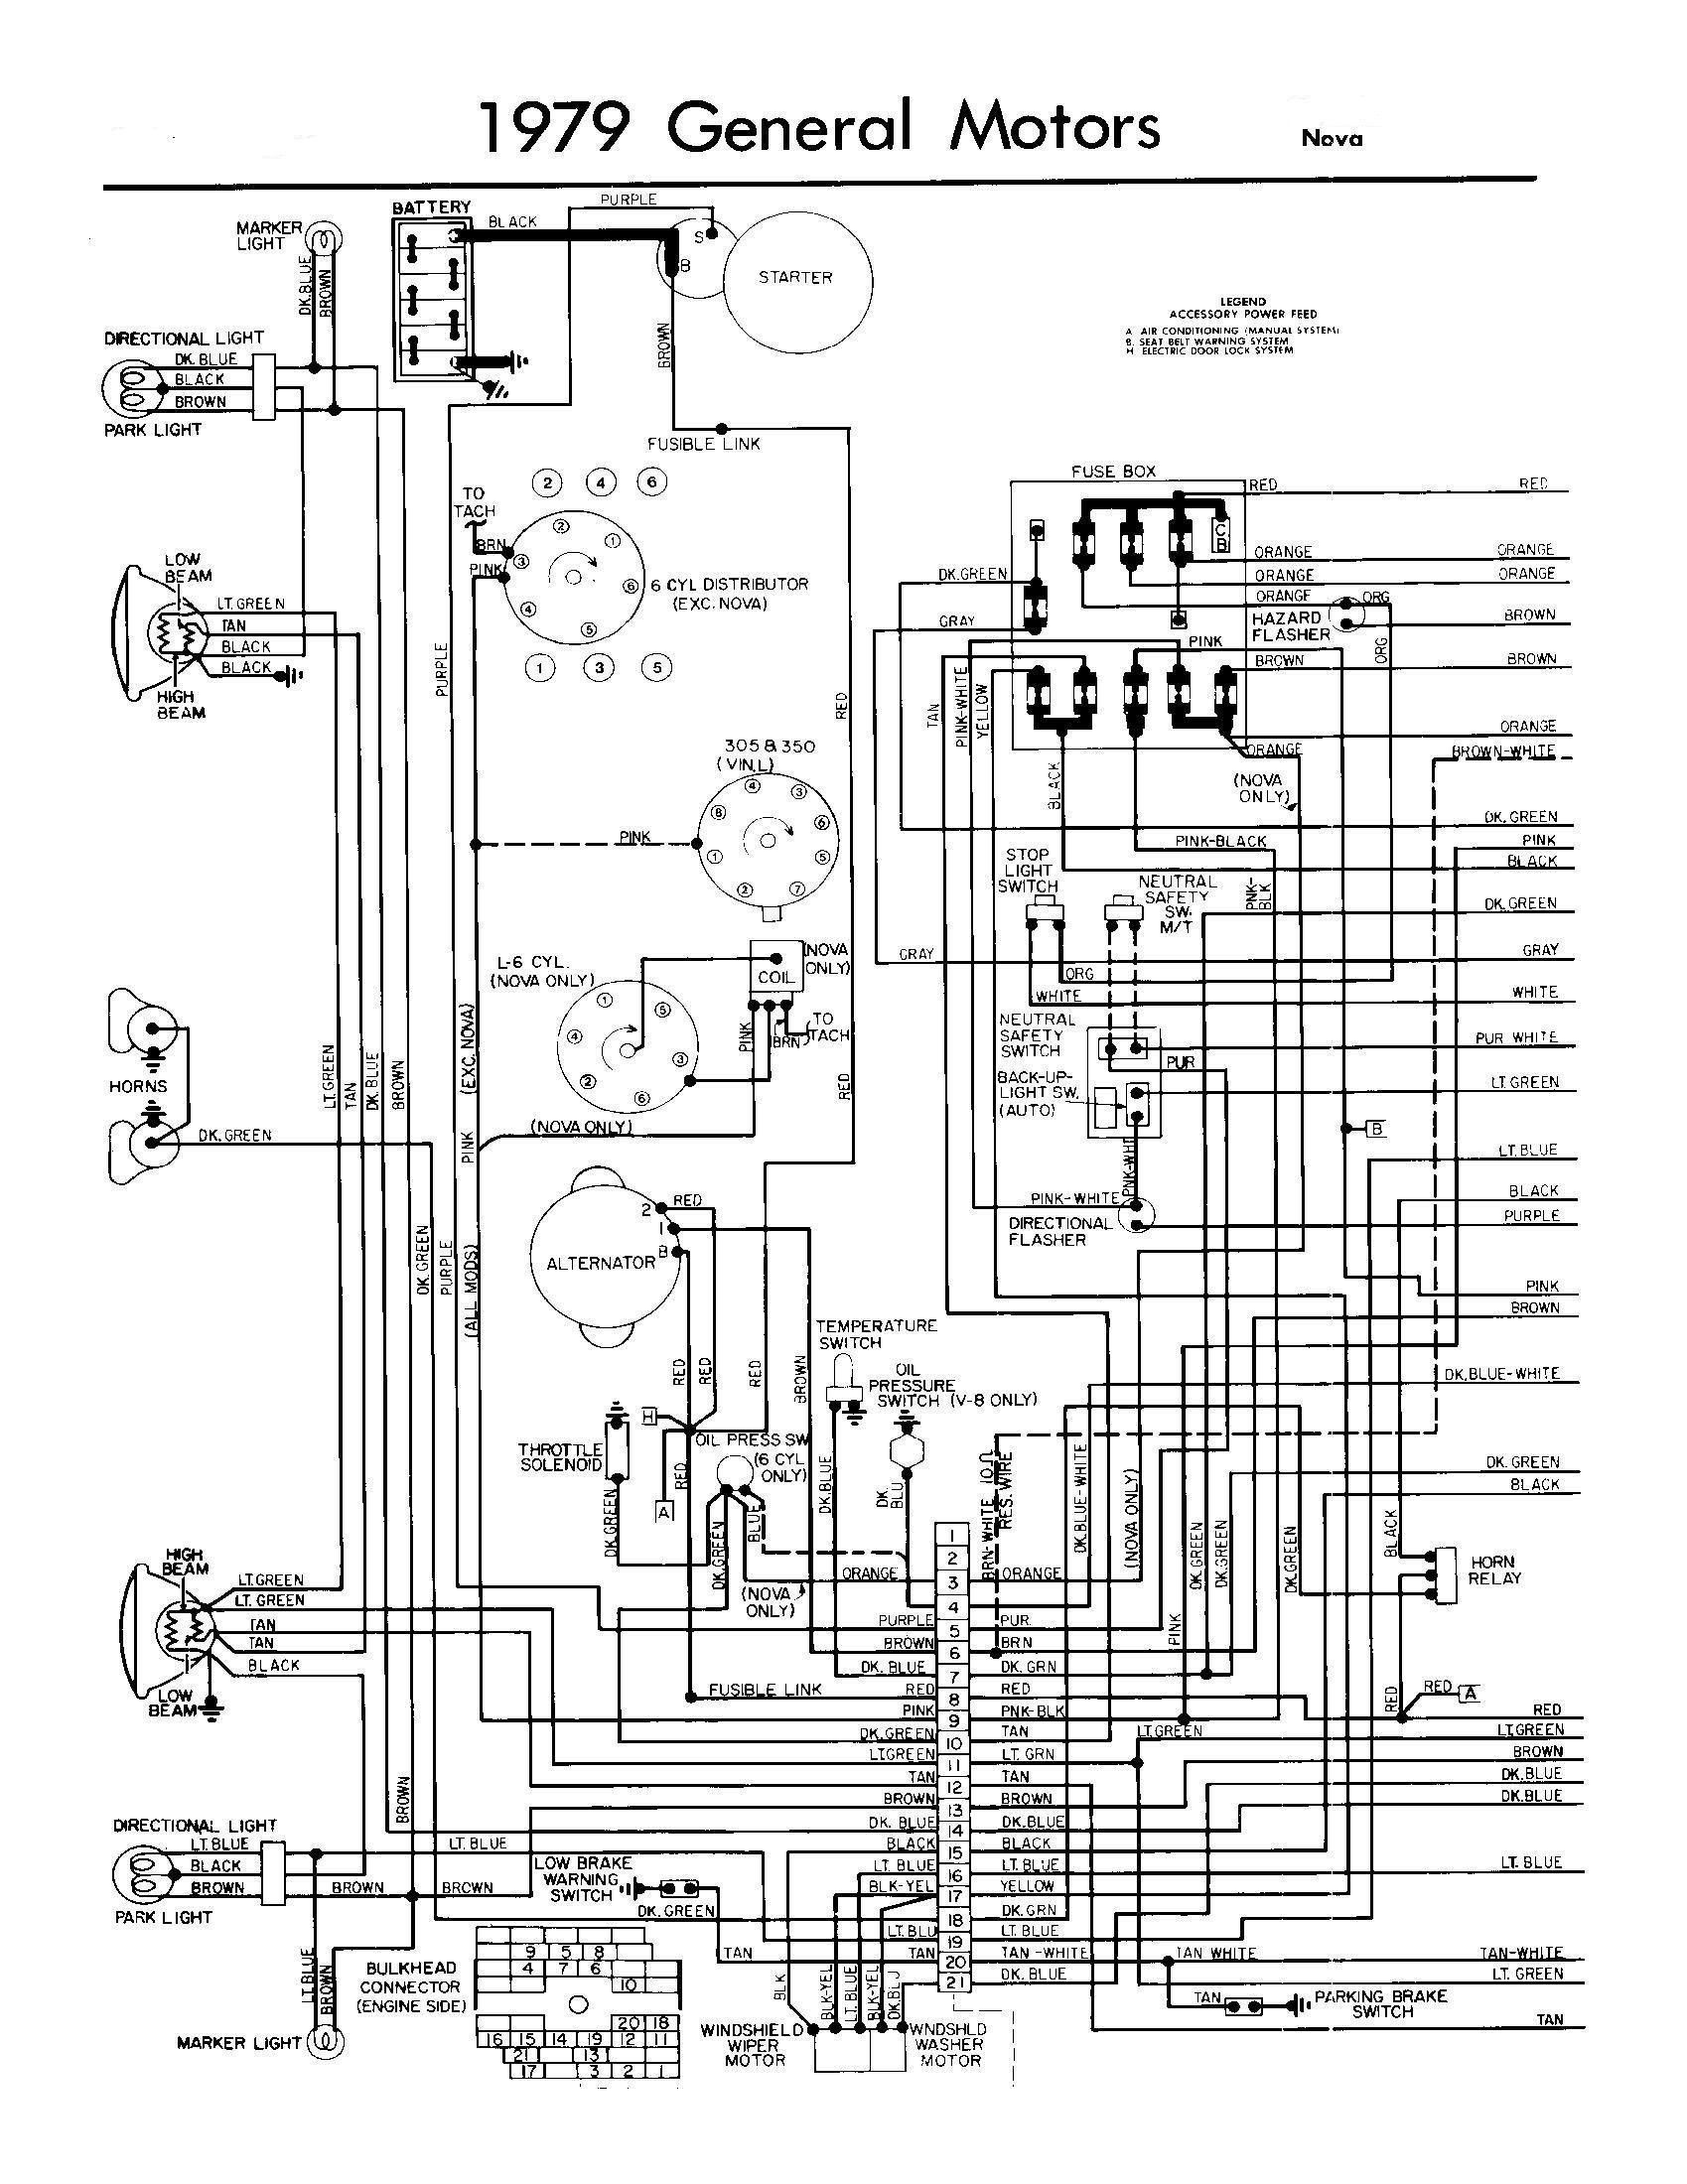 Programs For Wiring Diagrams